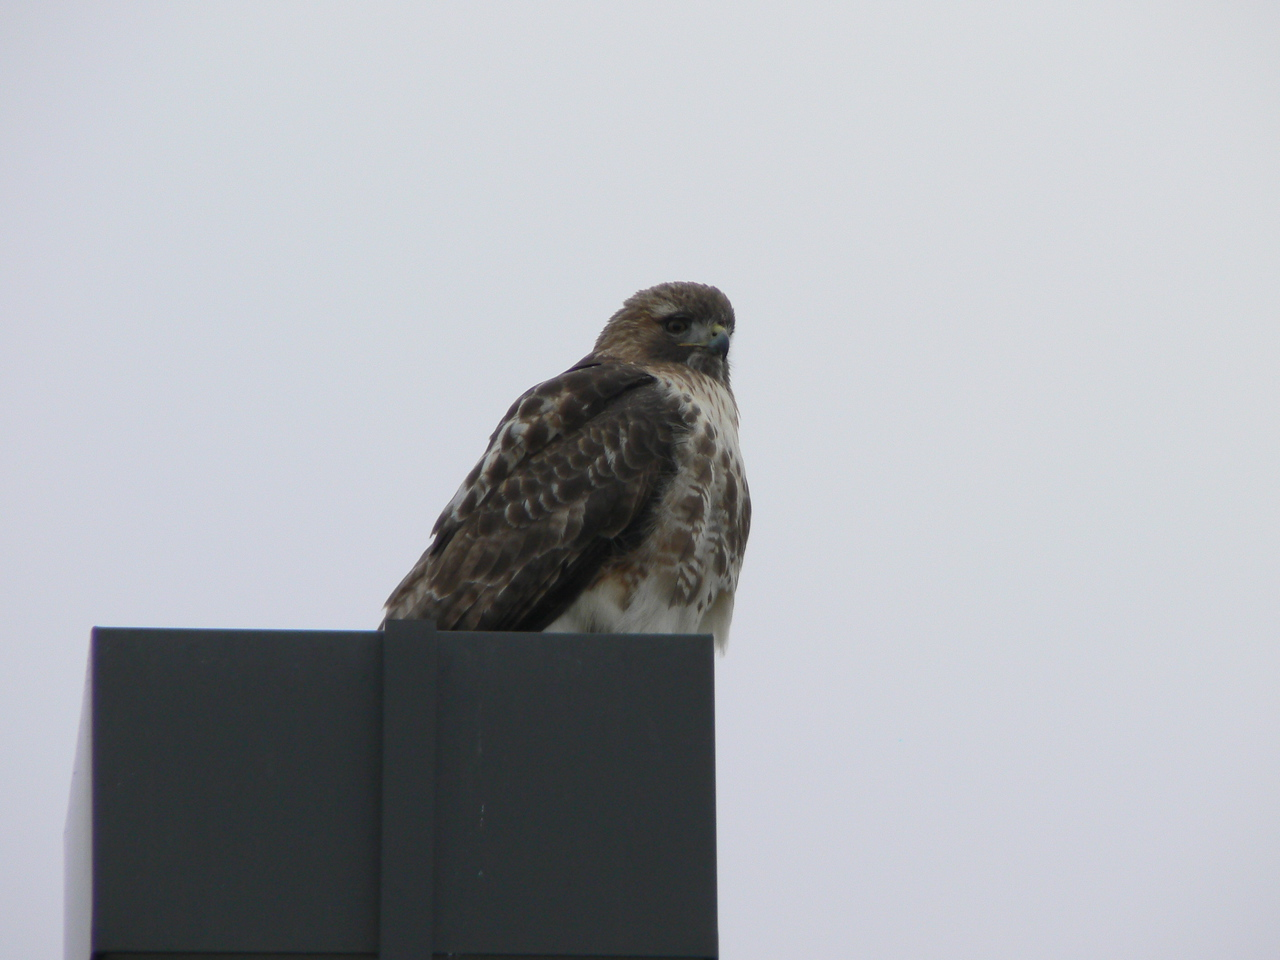 Pattern metering, +0.66 EV  - red tailed hawk